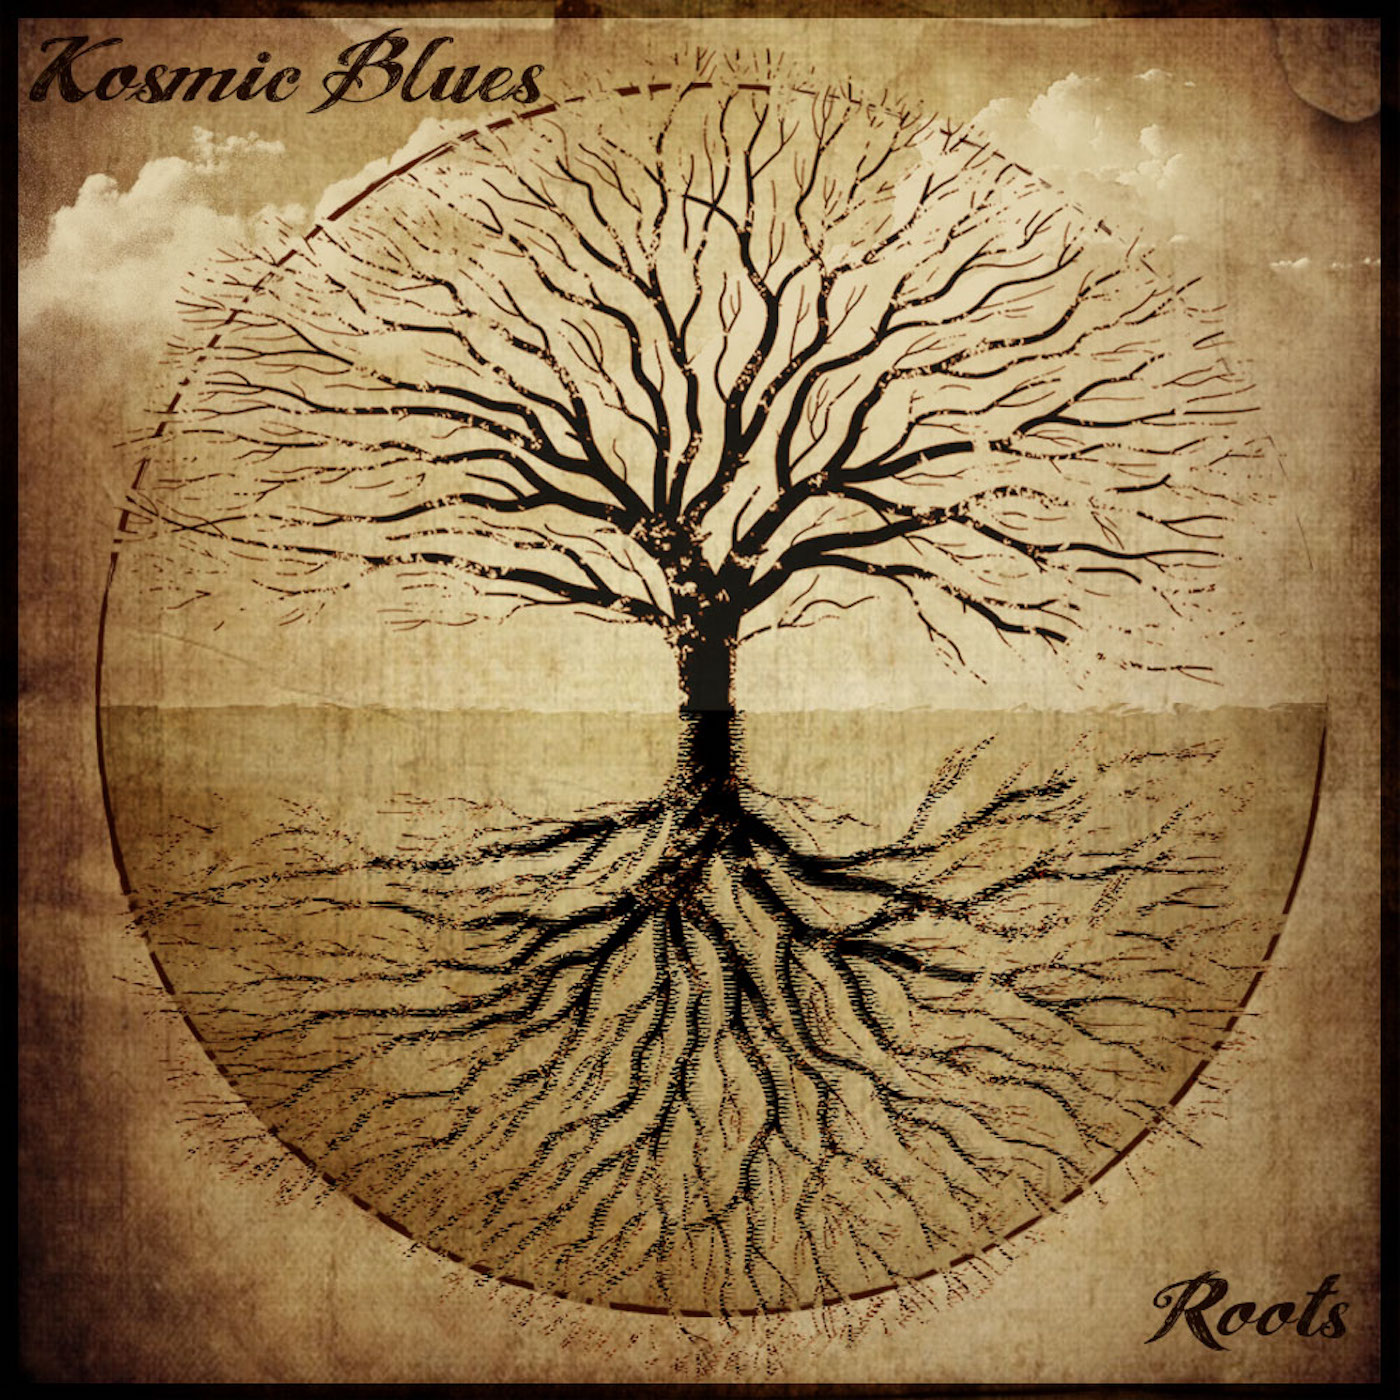 Kosmic Blues release their first EP,